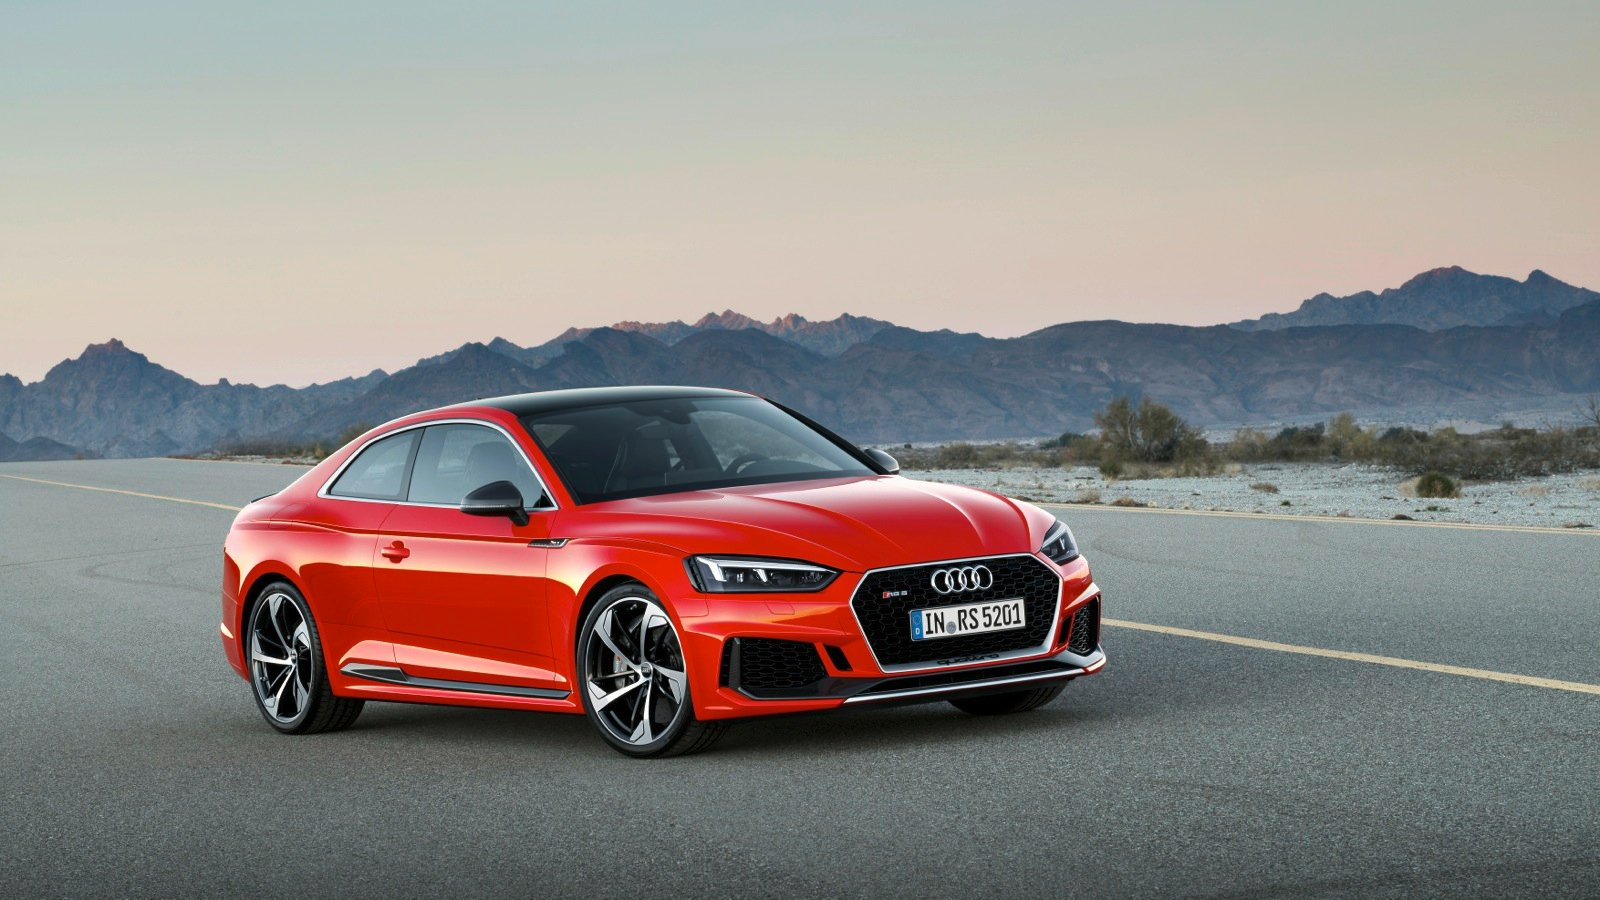 2017 Audi Rs5 Coupe Revealed Photos 1 Of 39